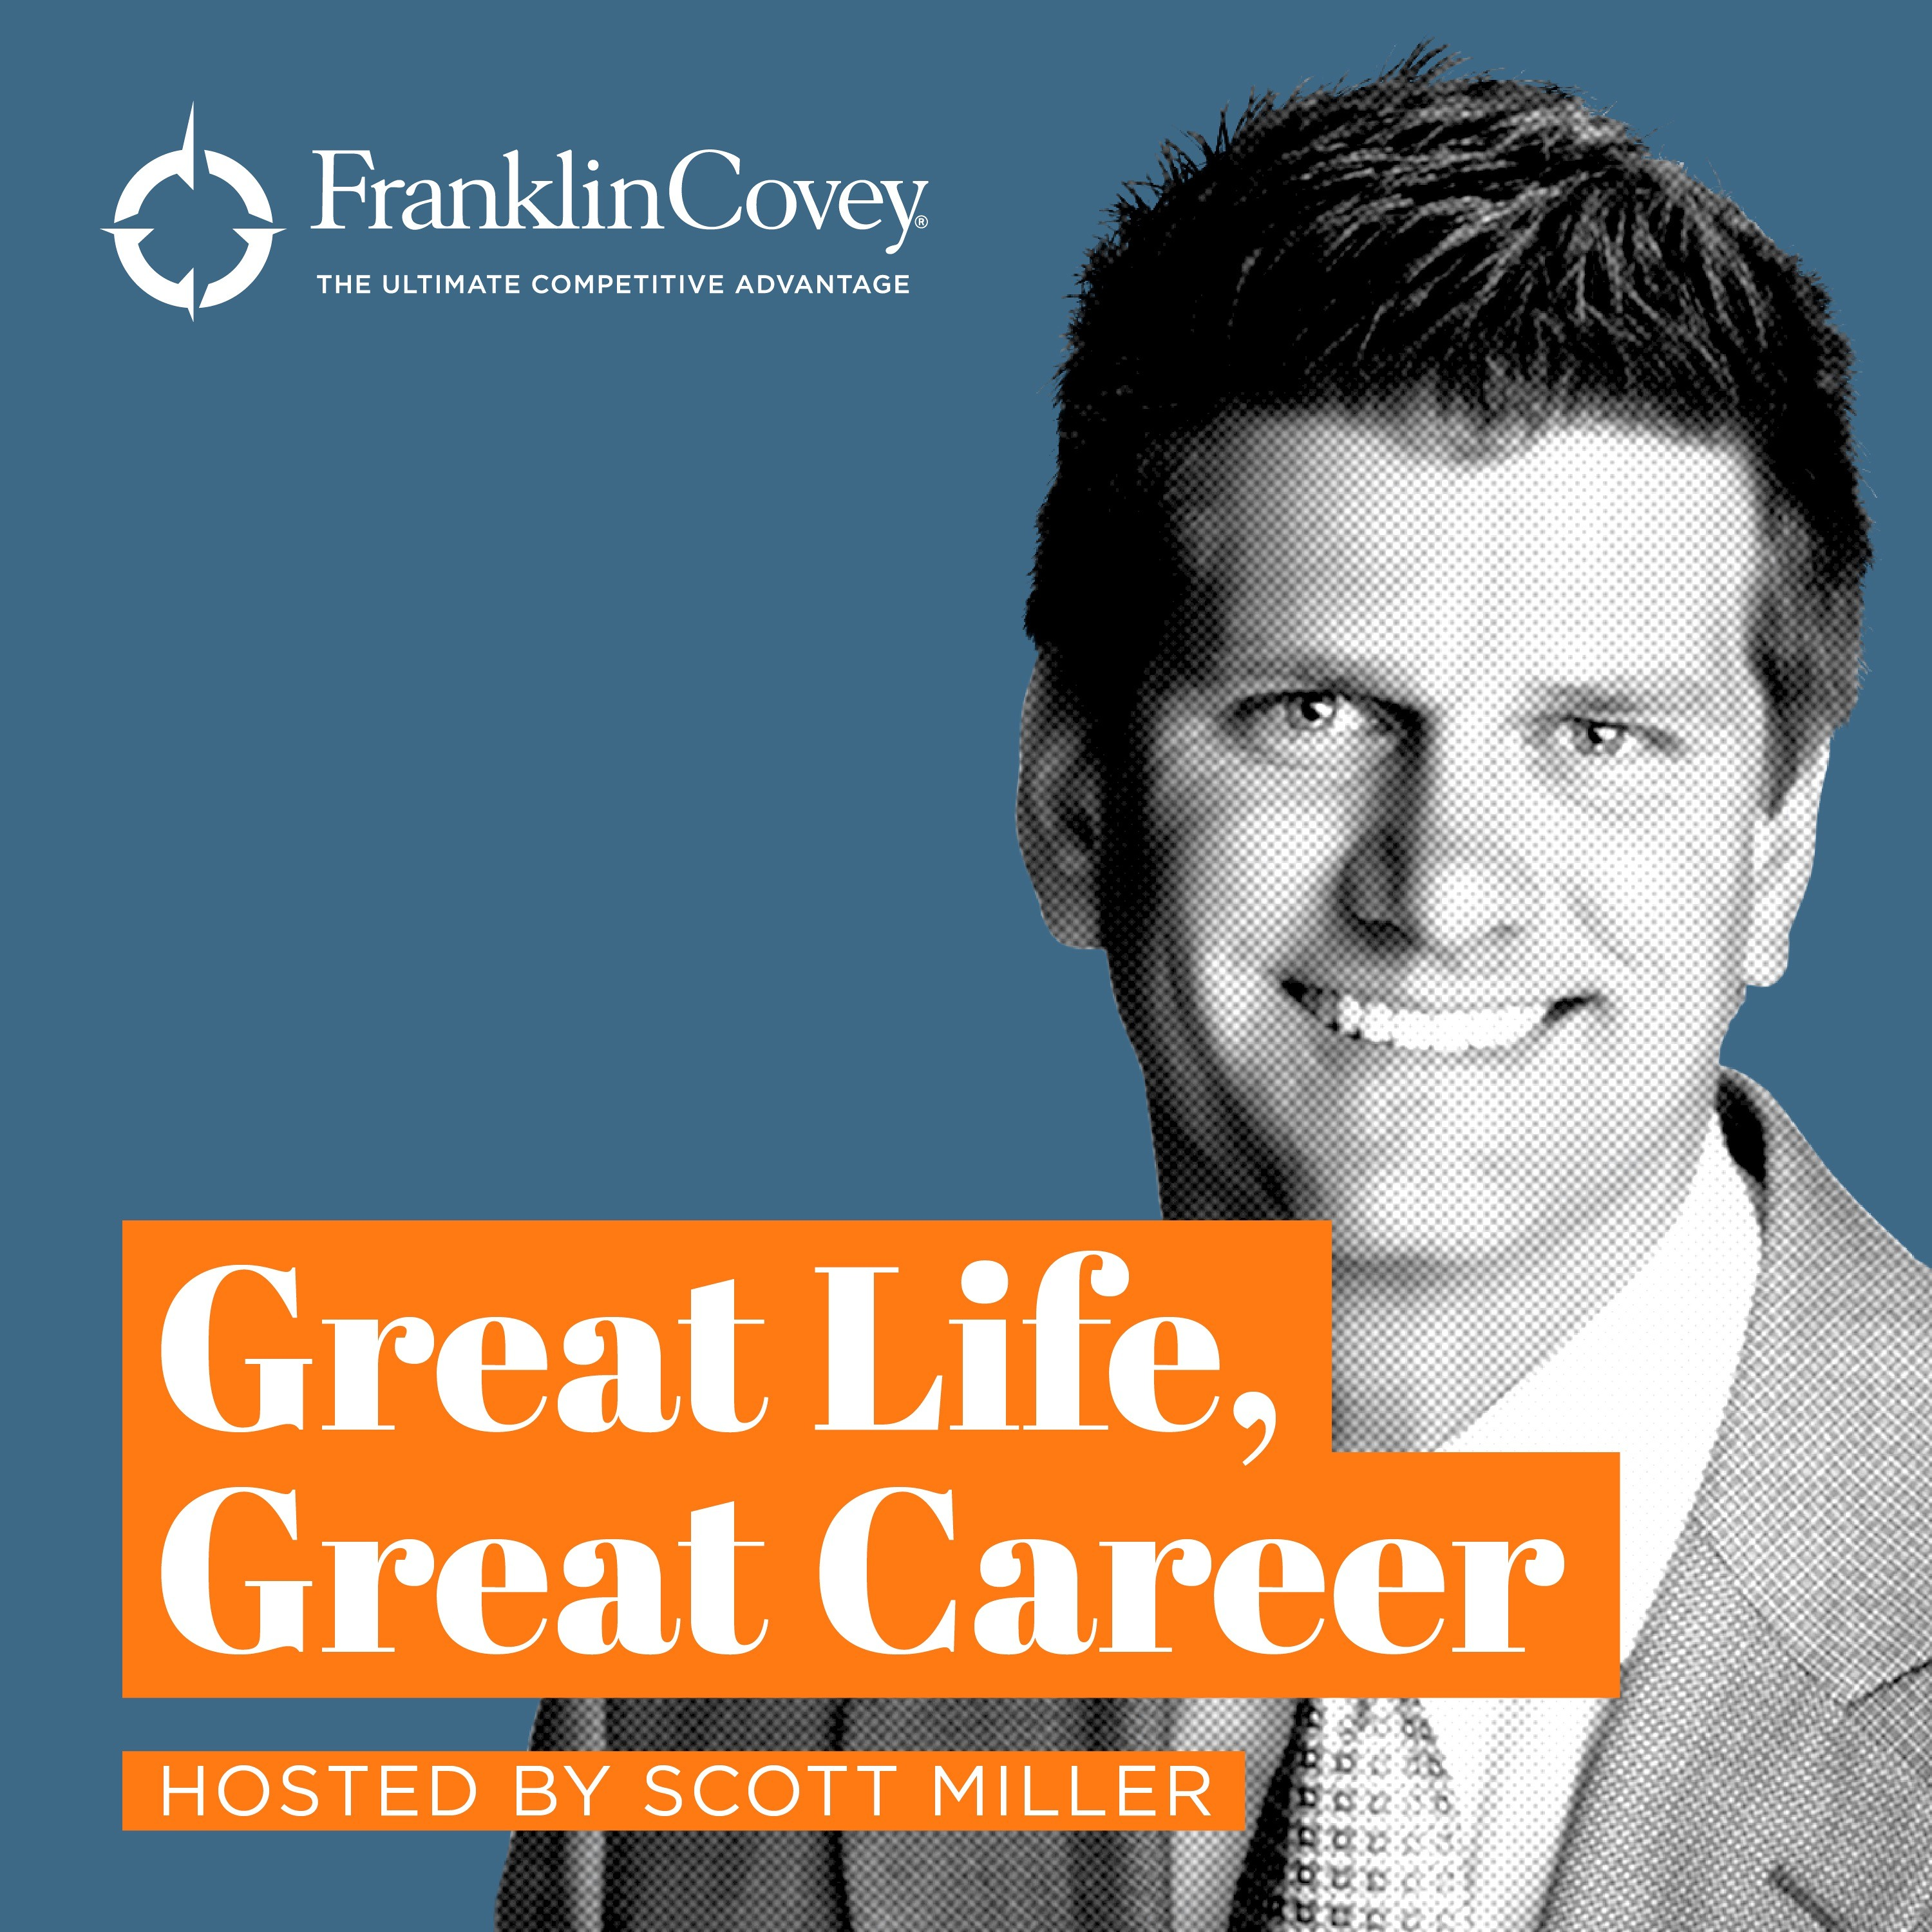 Episode #45: Be a better Sales Partner with FranklinCovey President Paul Walker